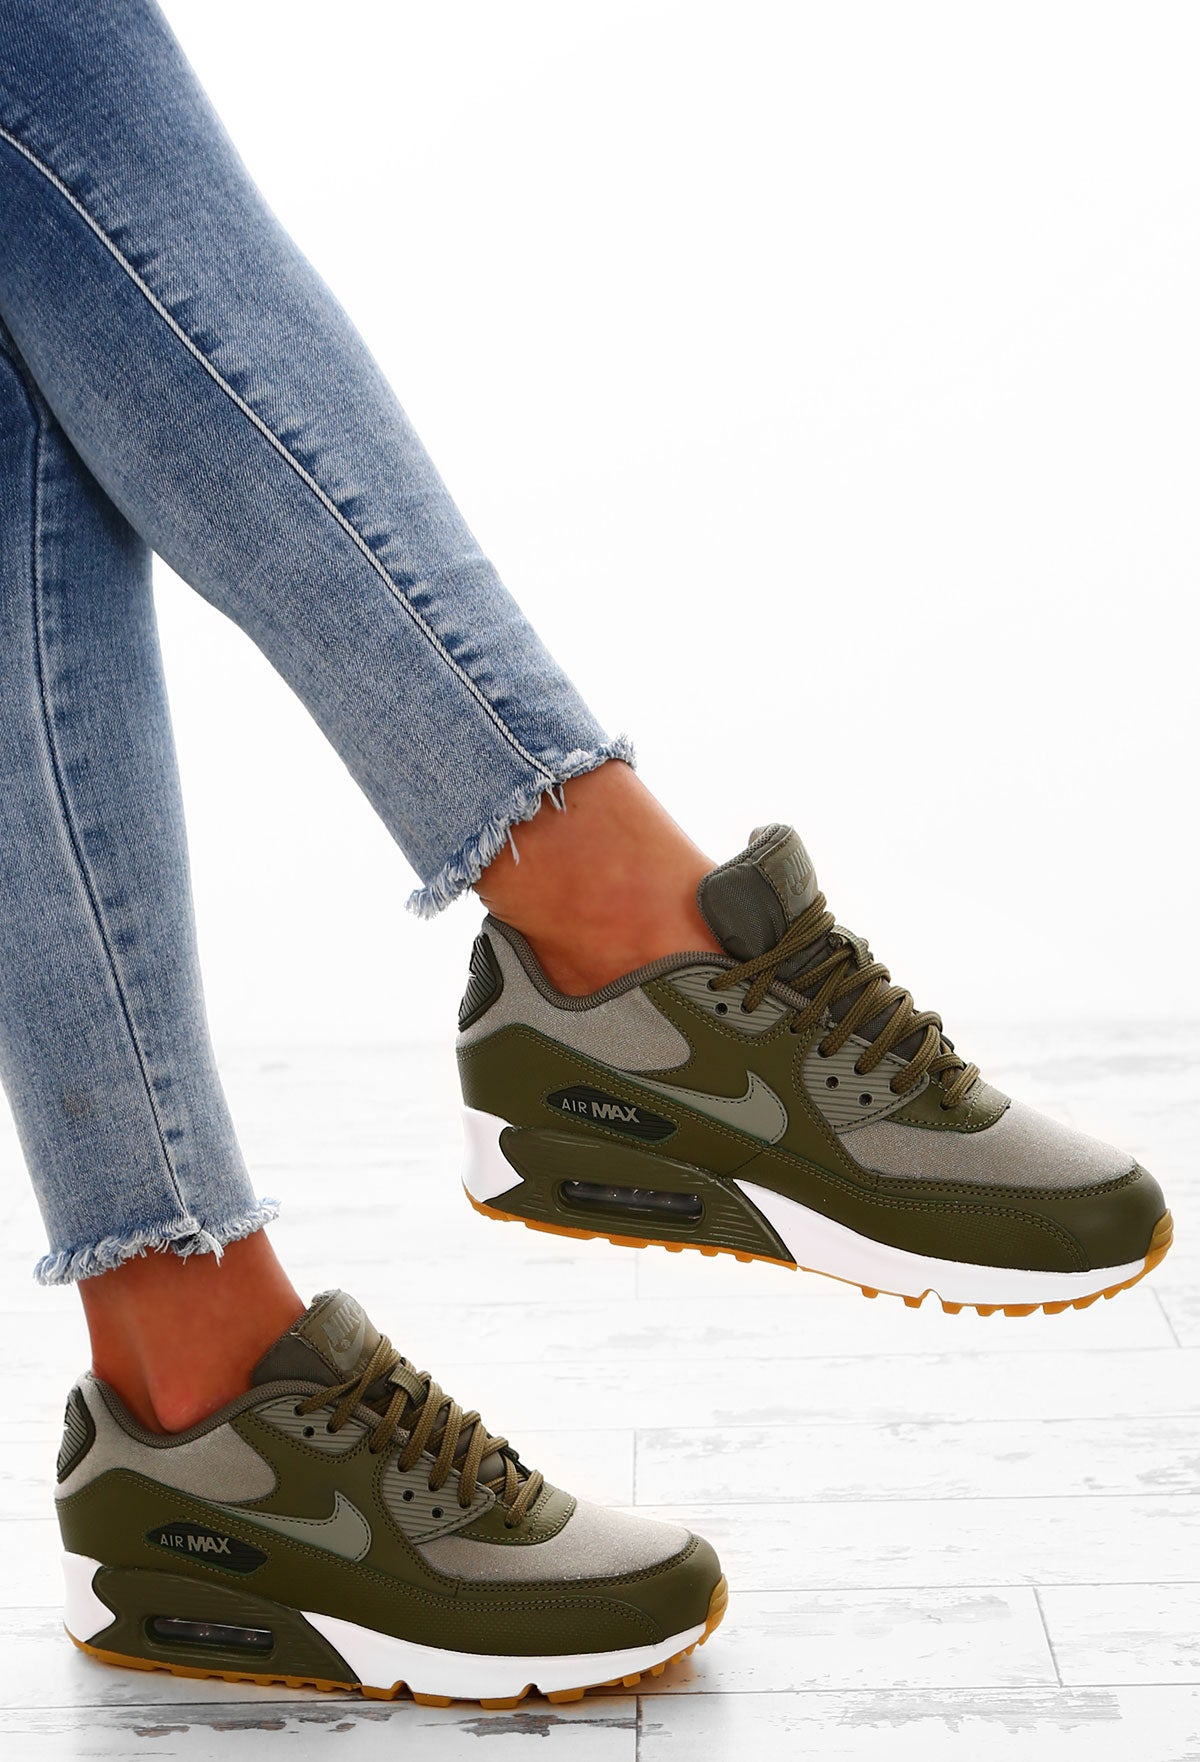 4b24134571 Nike Air Max 90 Khaki Trainers – Pink Boutique UK